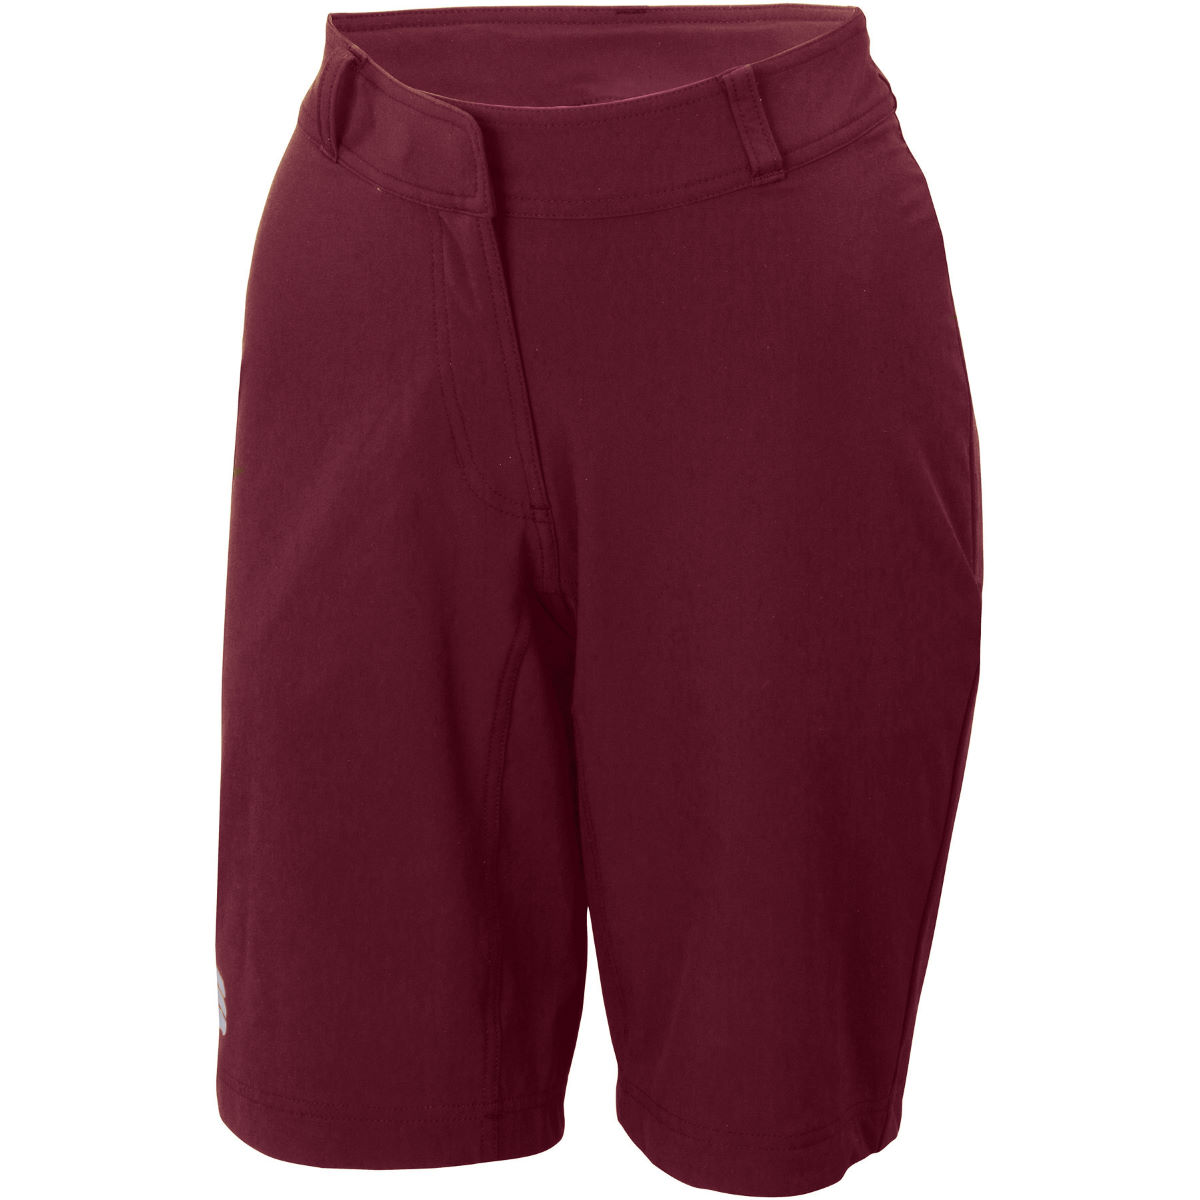 Sportful Womens Giara Over Shorts - Xl Red Wine  Baggy Shorts